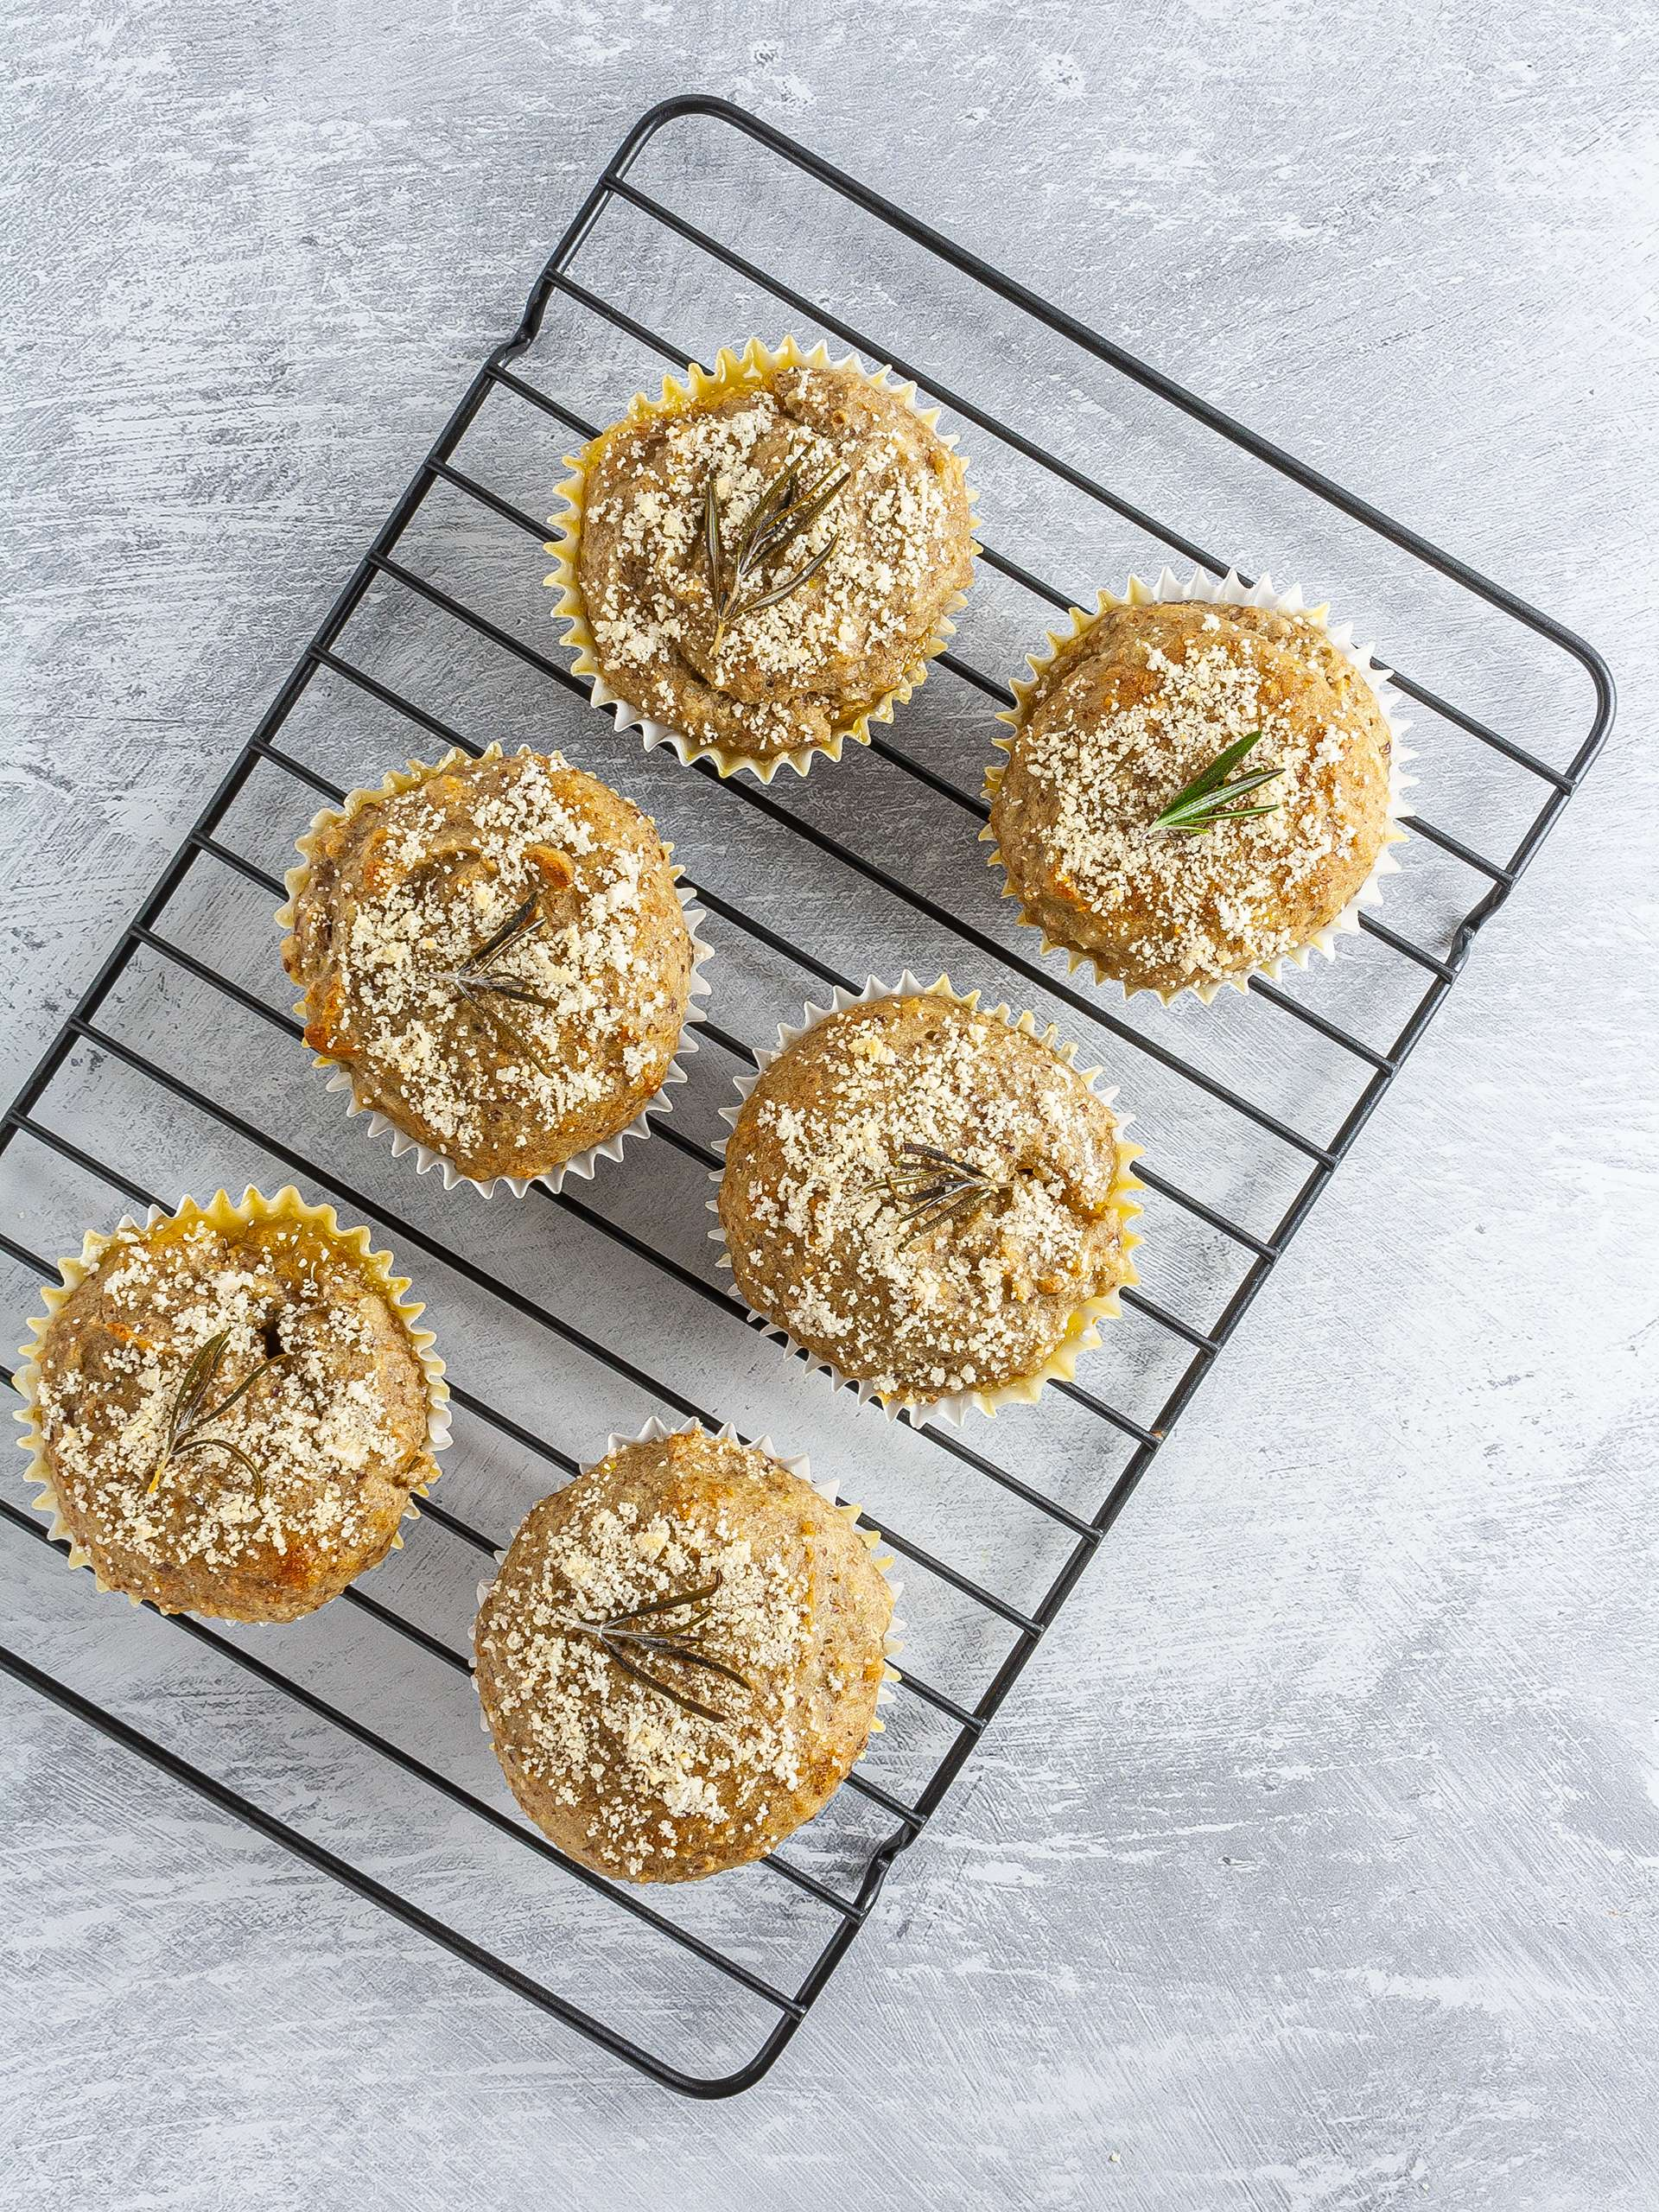 Baked lemon rosemary muffins